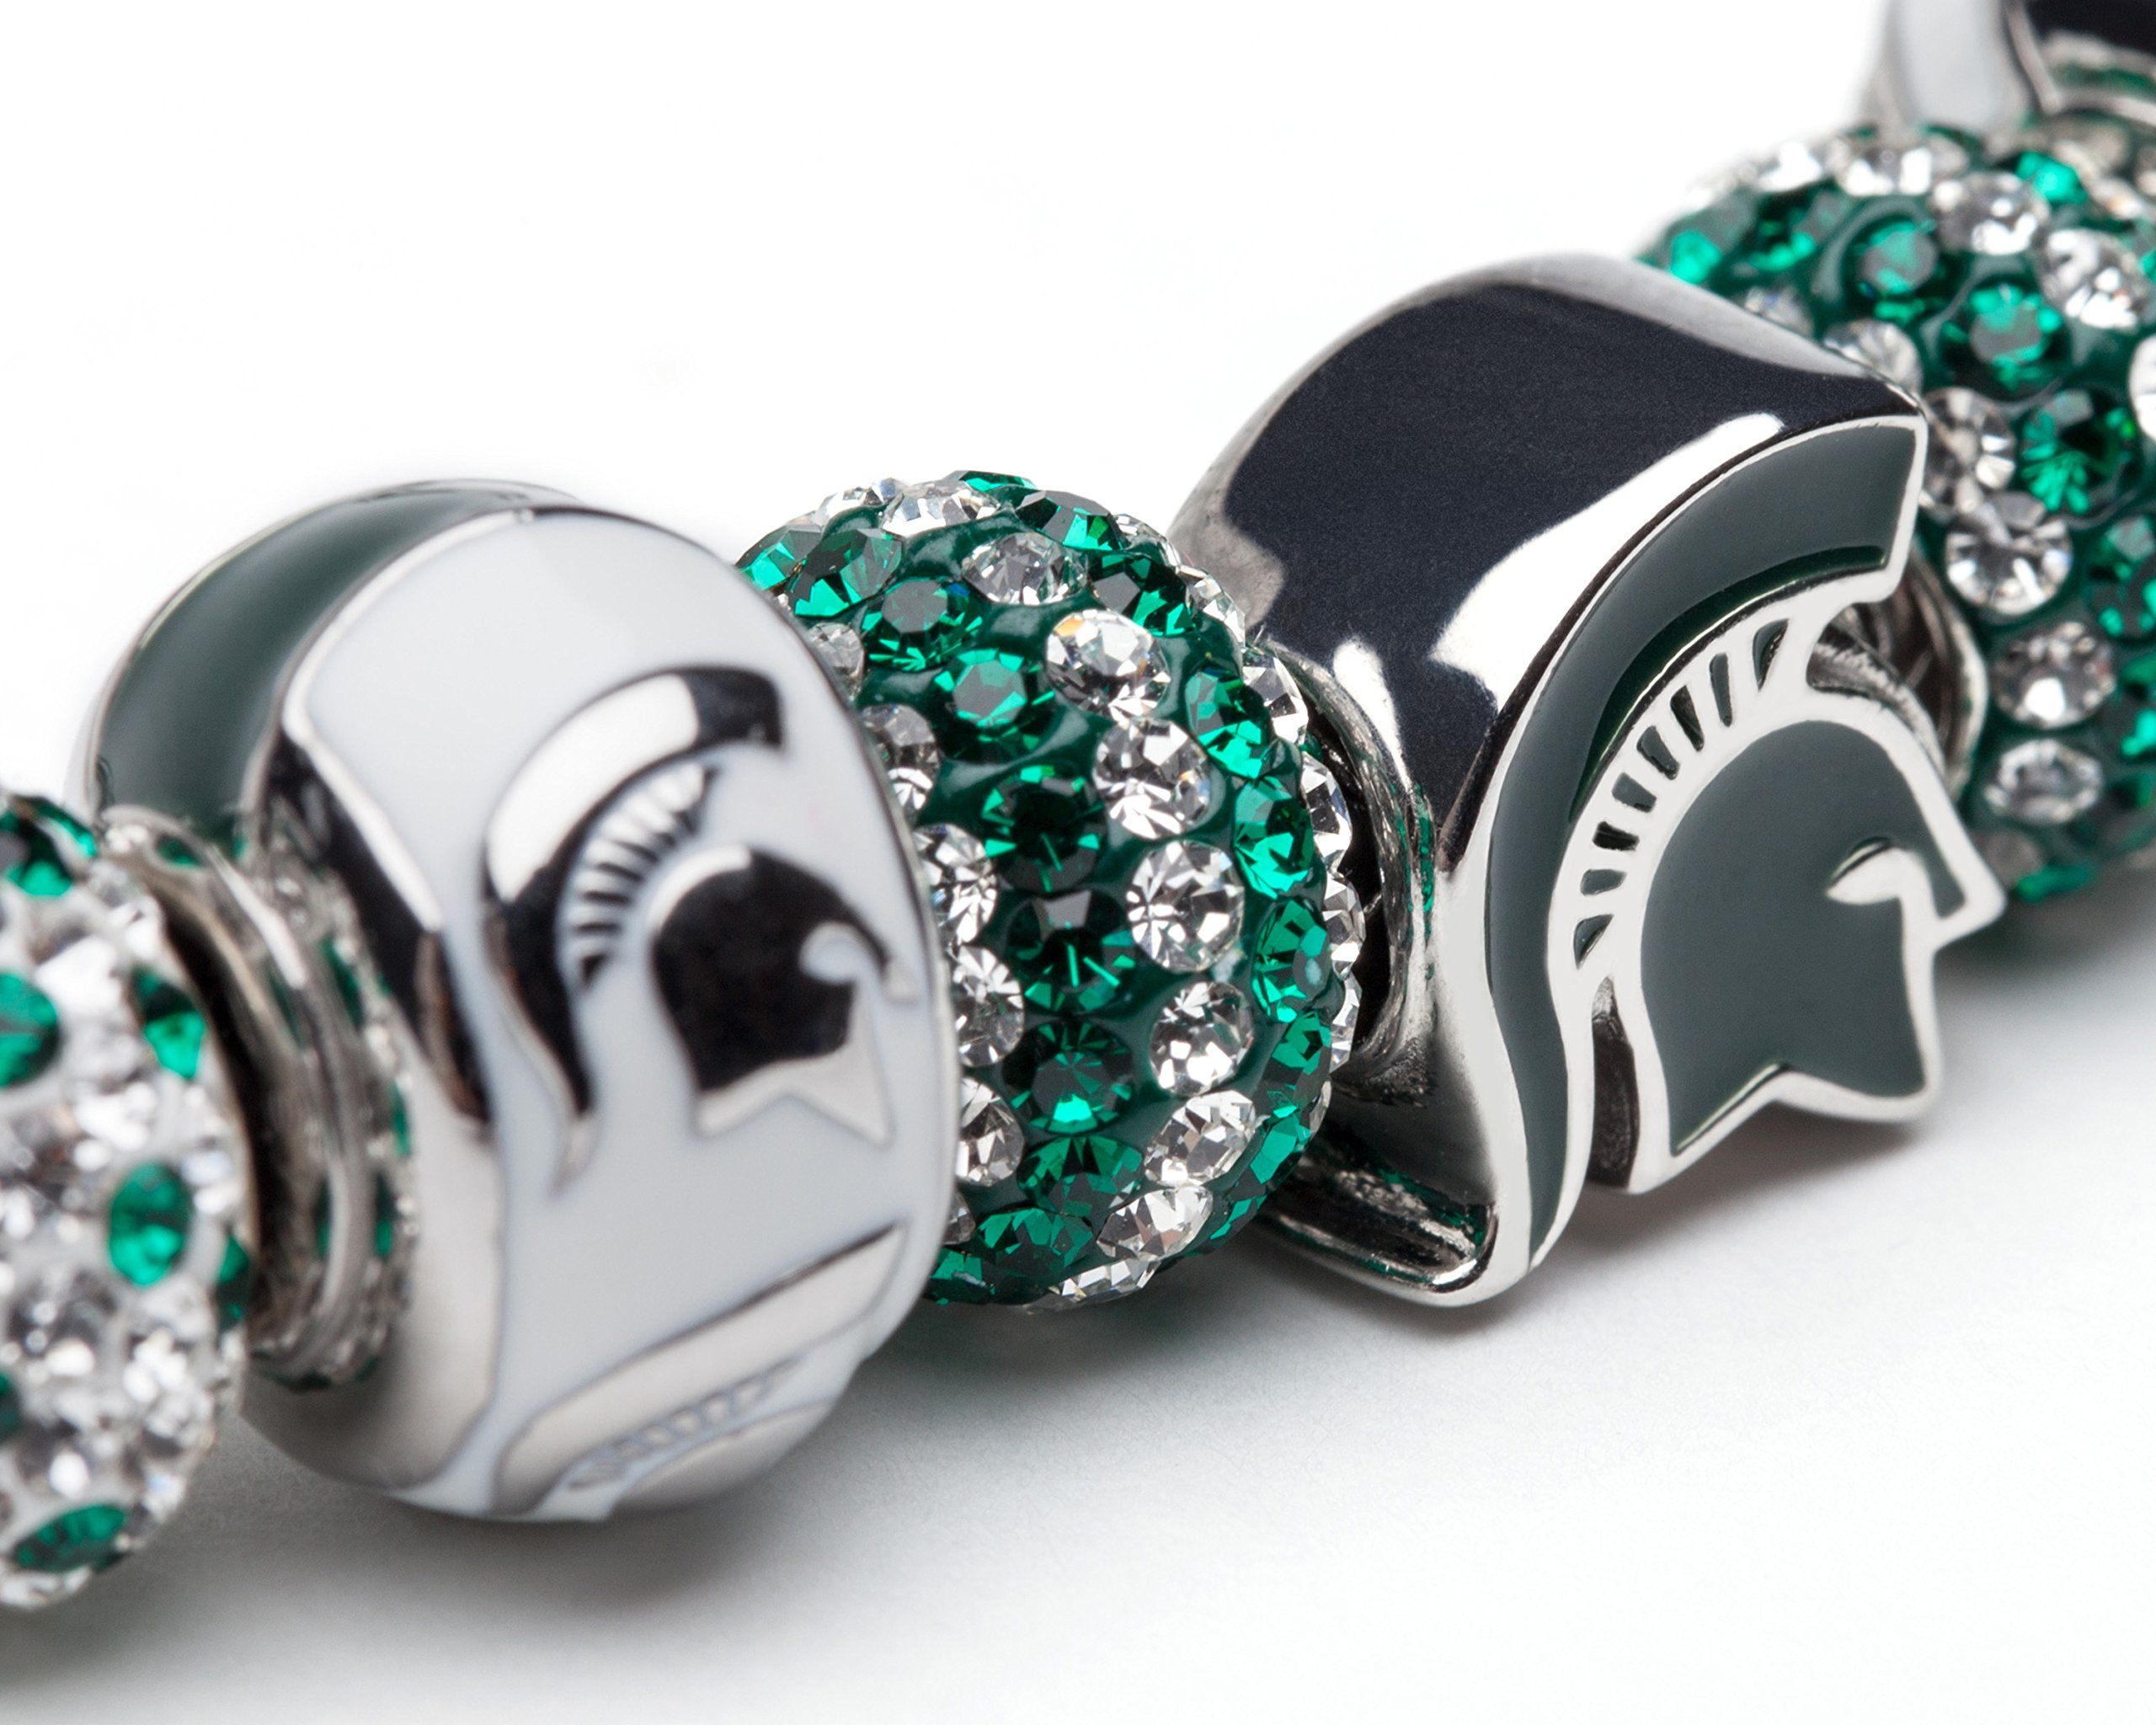 Michigan State Bracelet | MSU Spartans Charm Bracelet with 3 Spartan Charms and 4 Crystal Beads | Officially Licensed Michigan State University Jewelry | Michigan State Gifts | Stainless Steel by Stone Armory (Image #2)